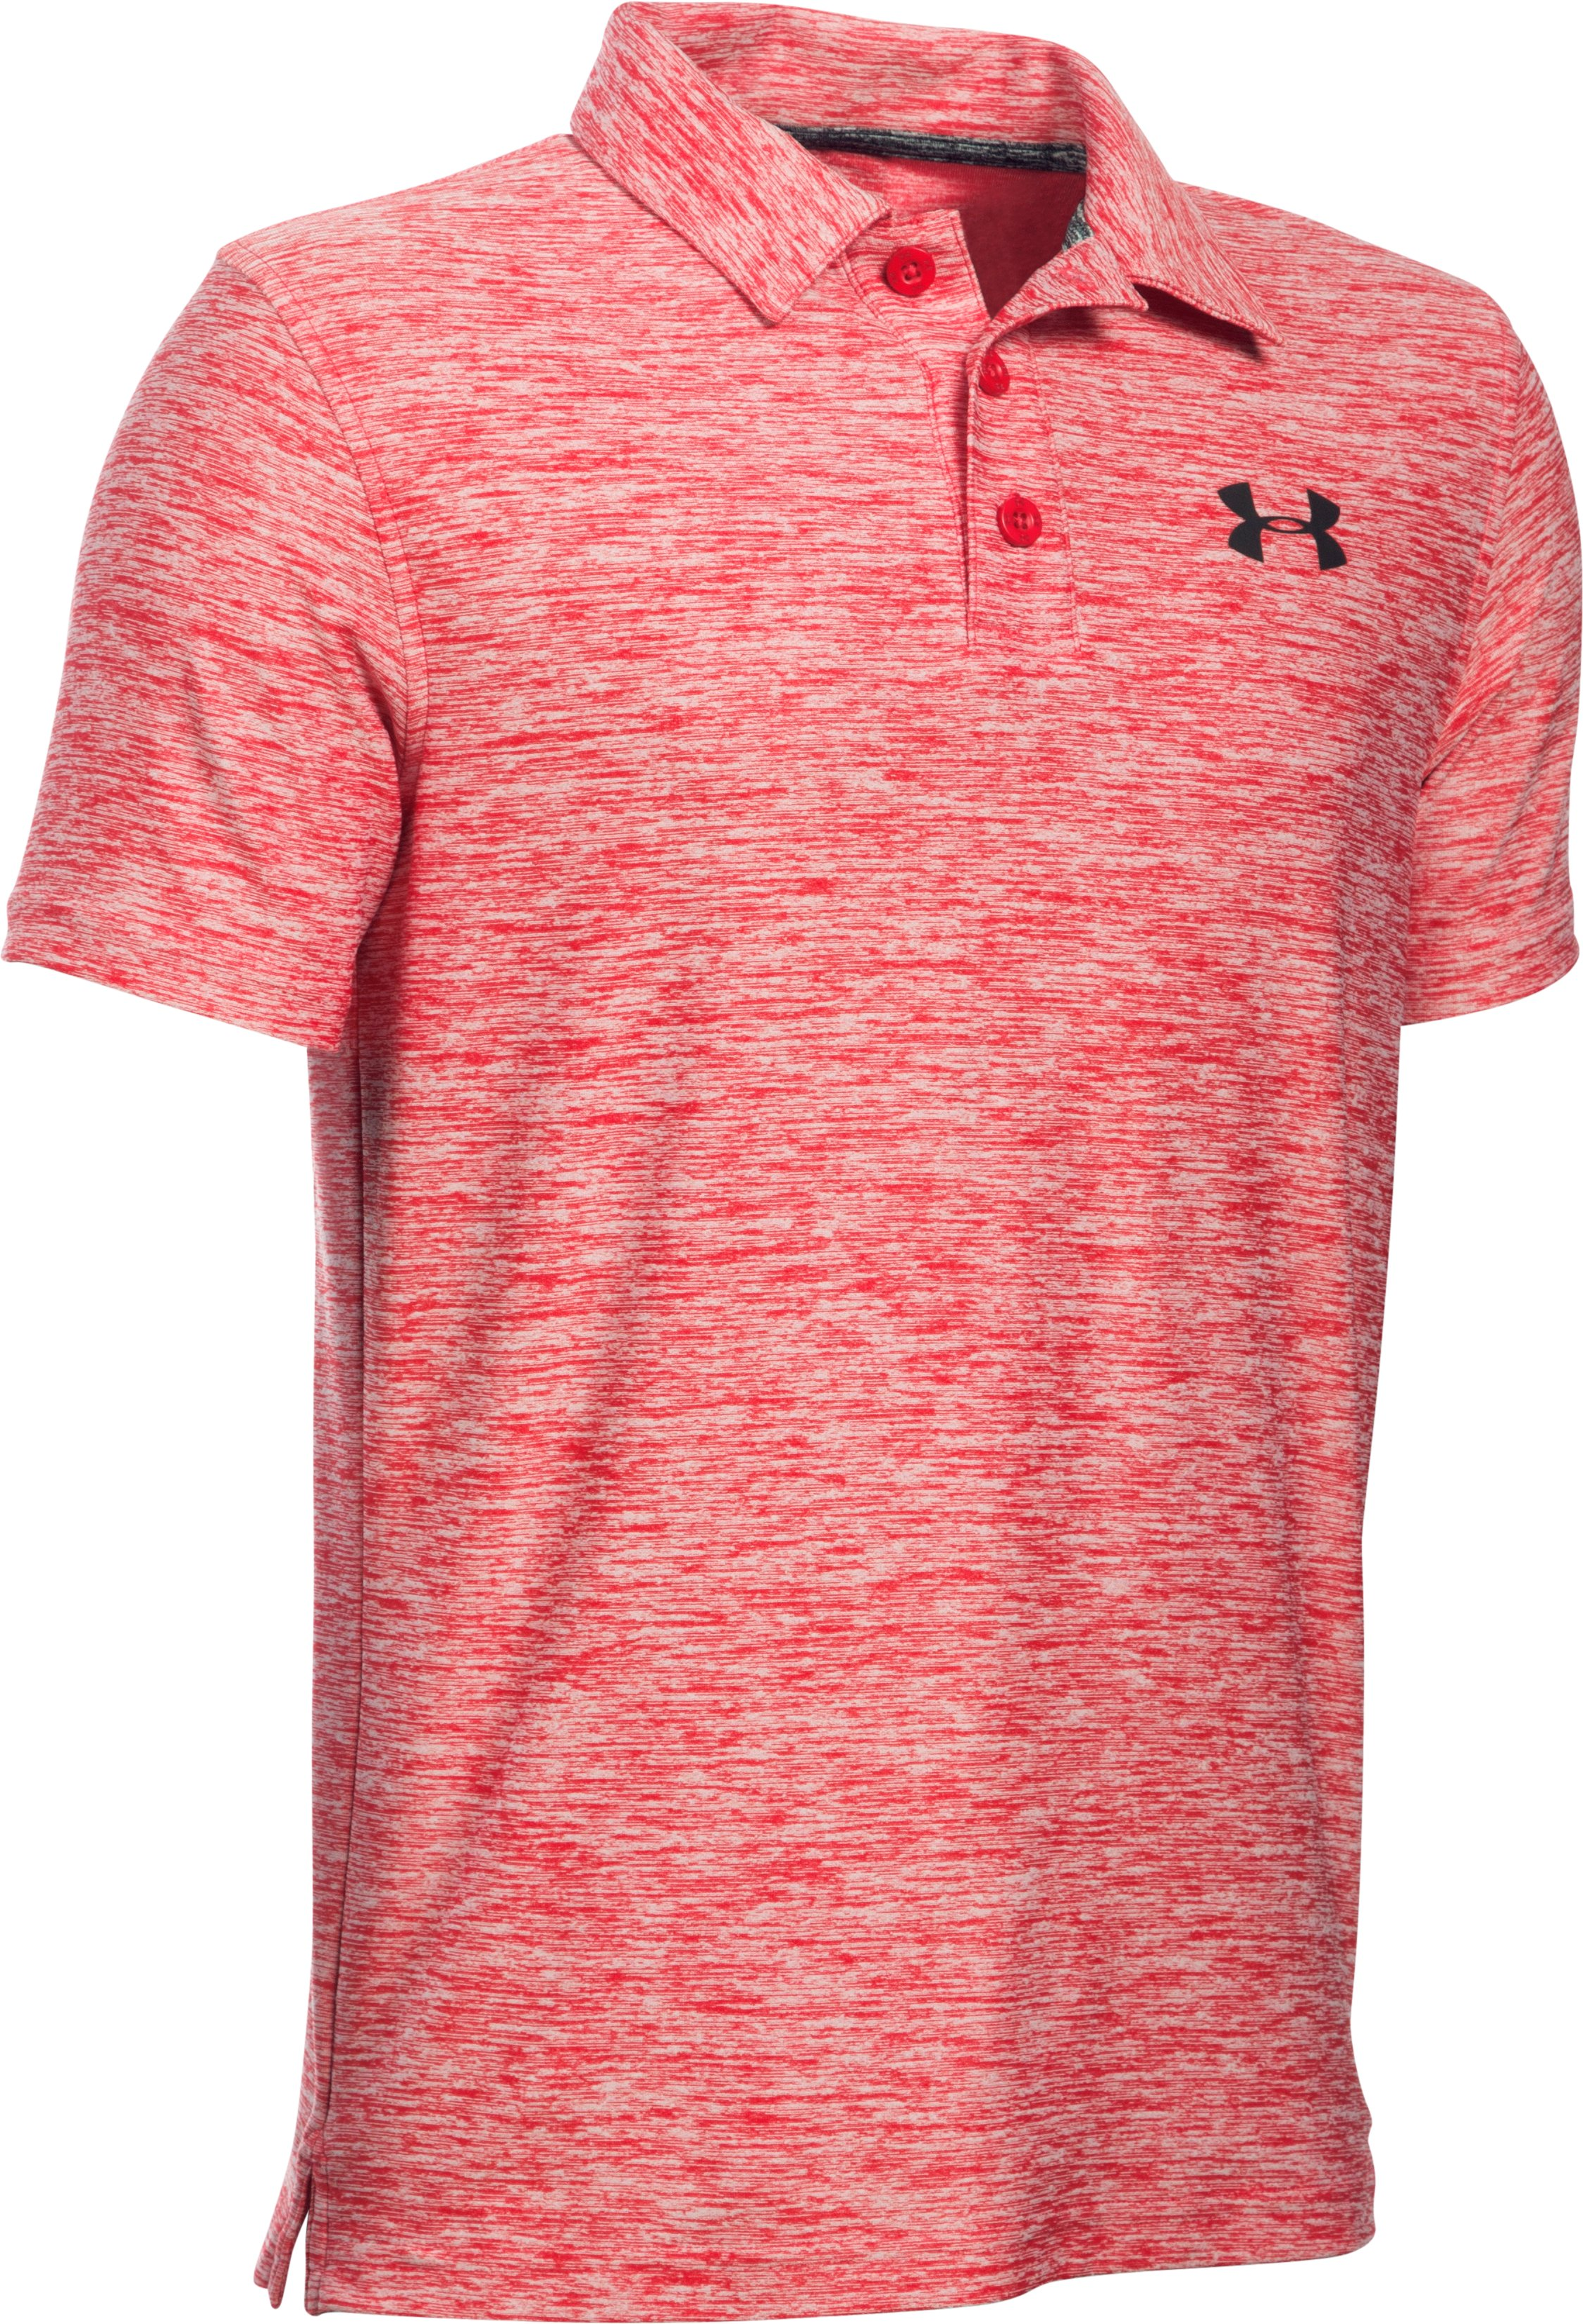 Boys' UA Playoff Polo, Red